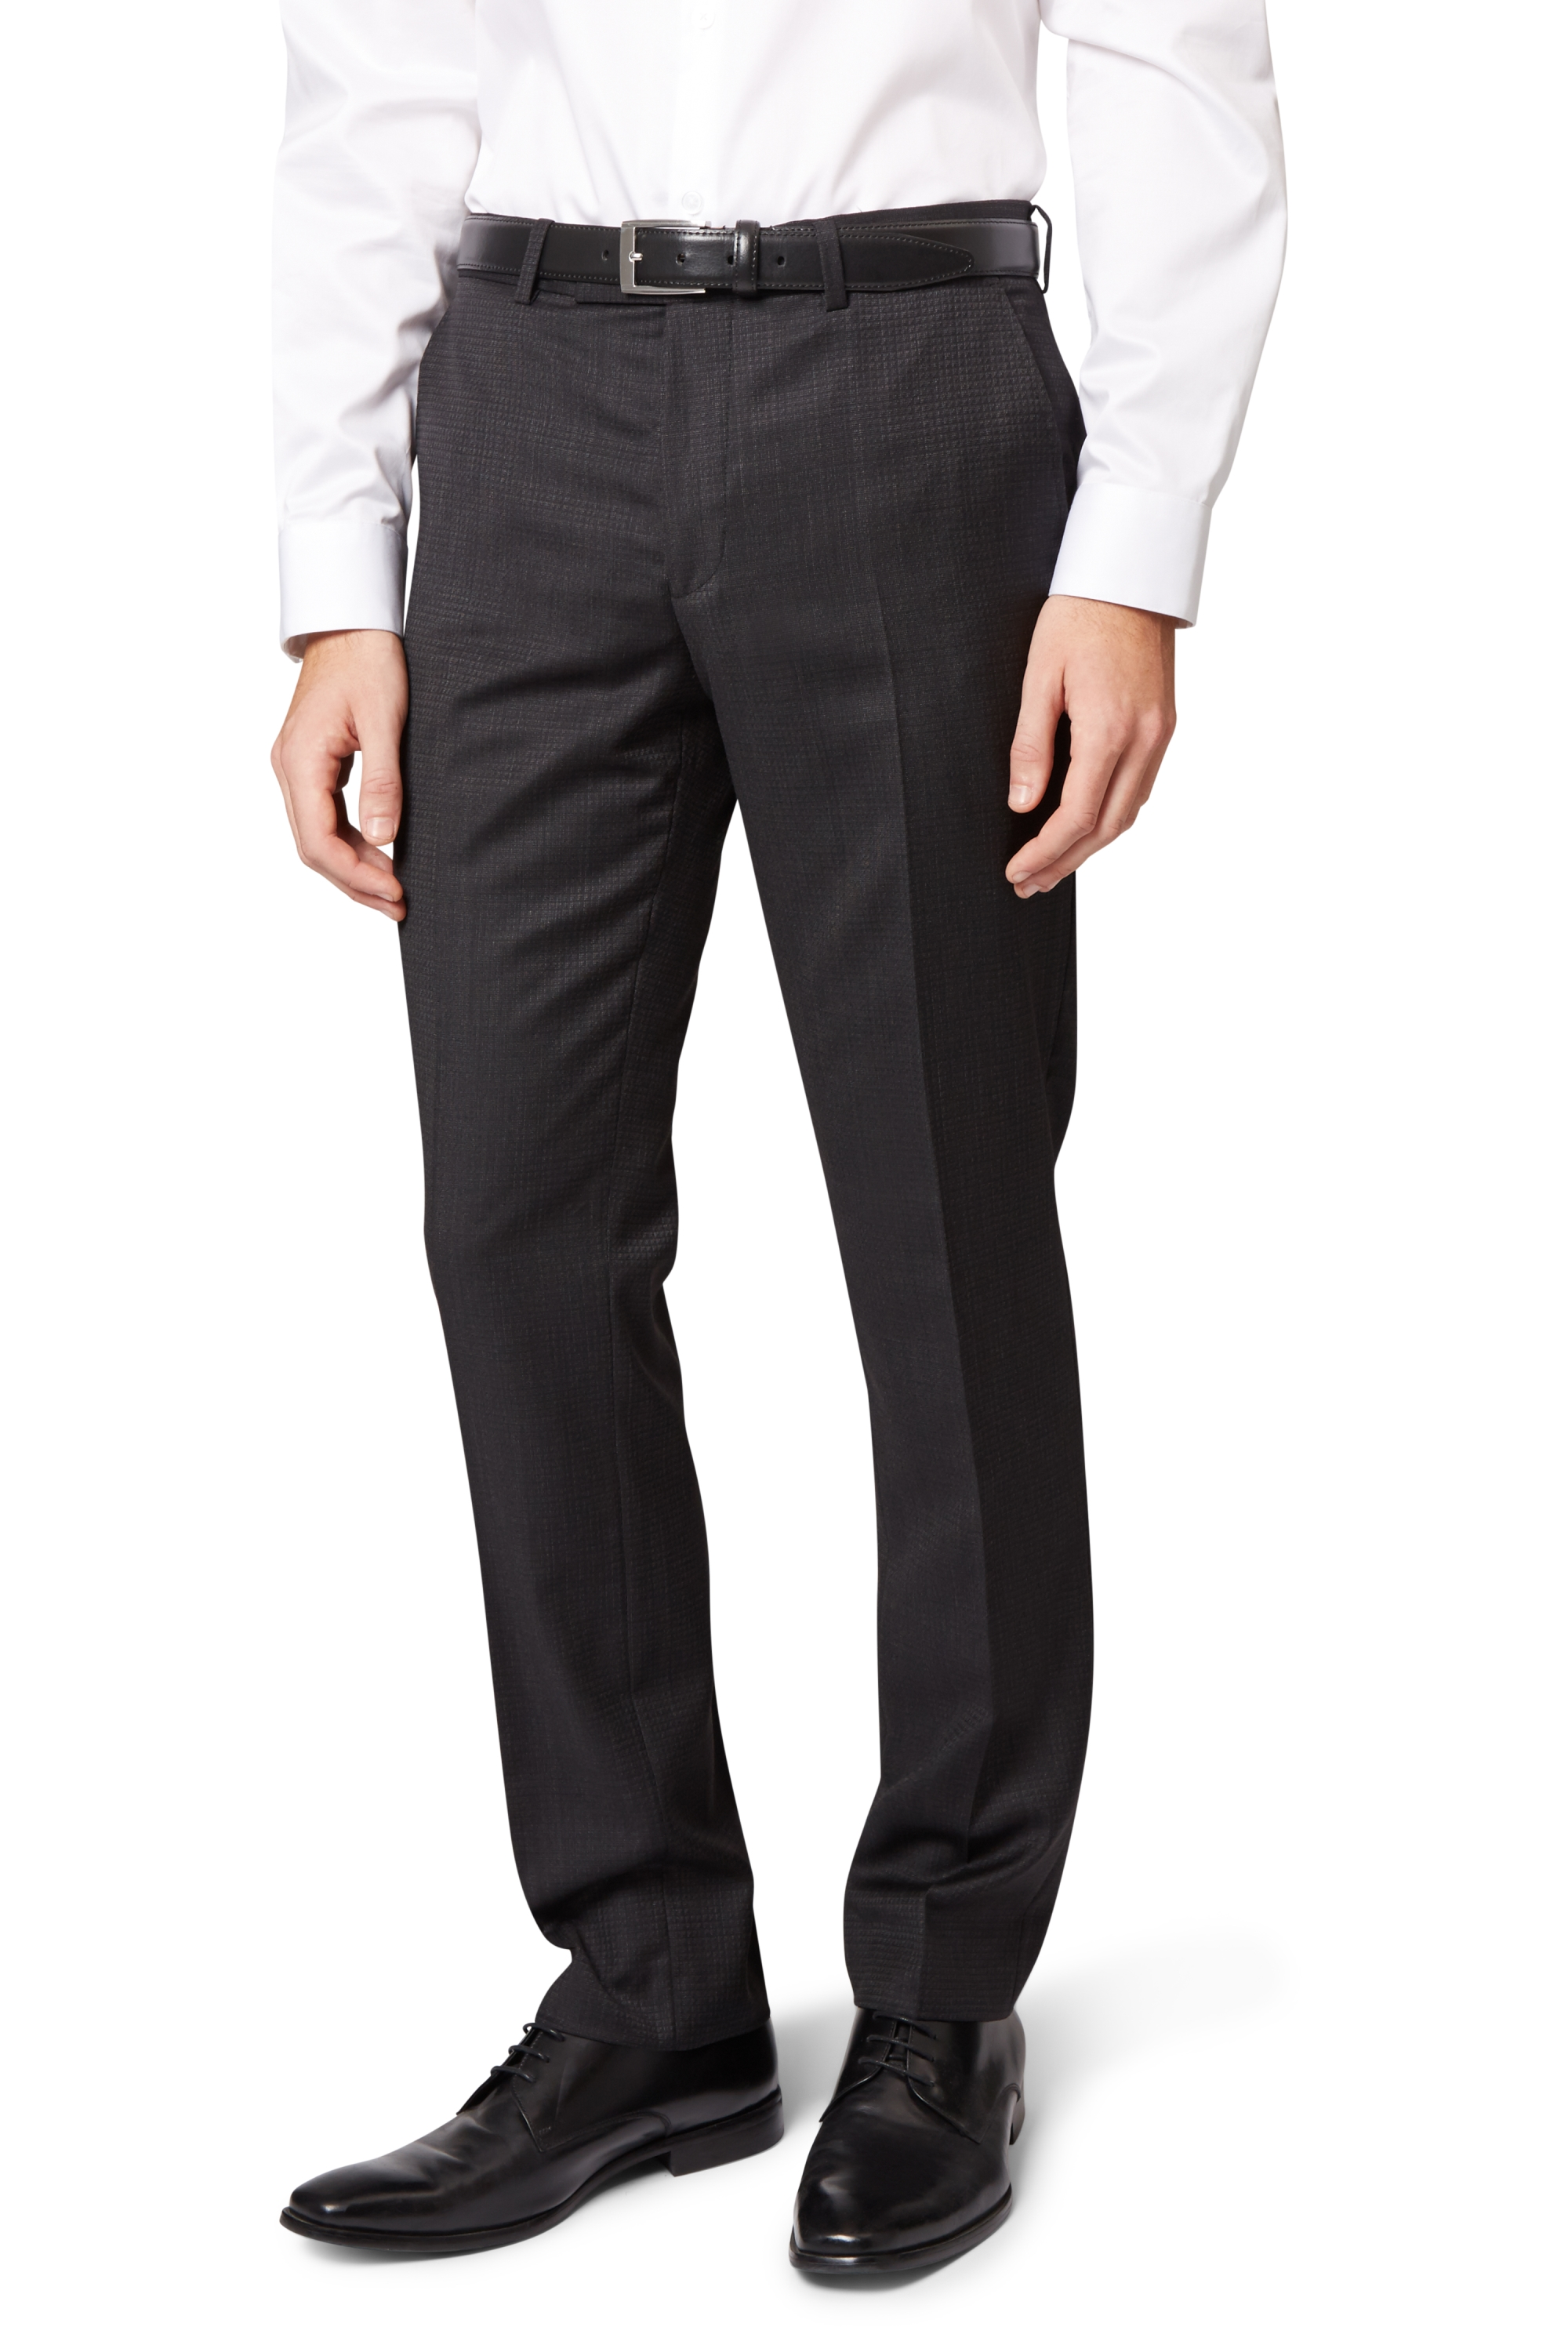 Buying mens dress pants is not out our choice most of the time and we just pick them as a matching thing to the shirts and jackets we buy.